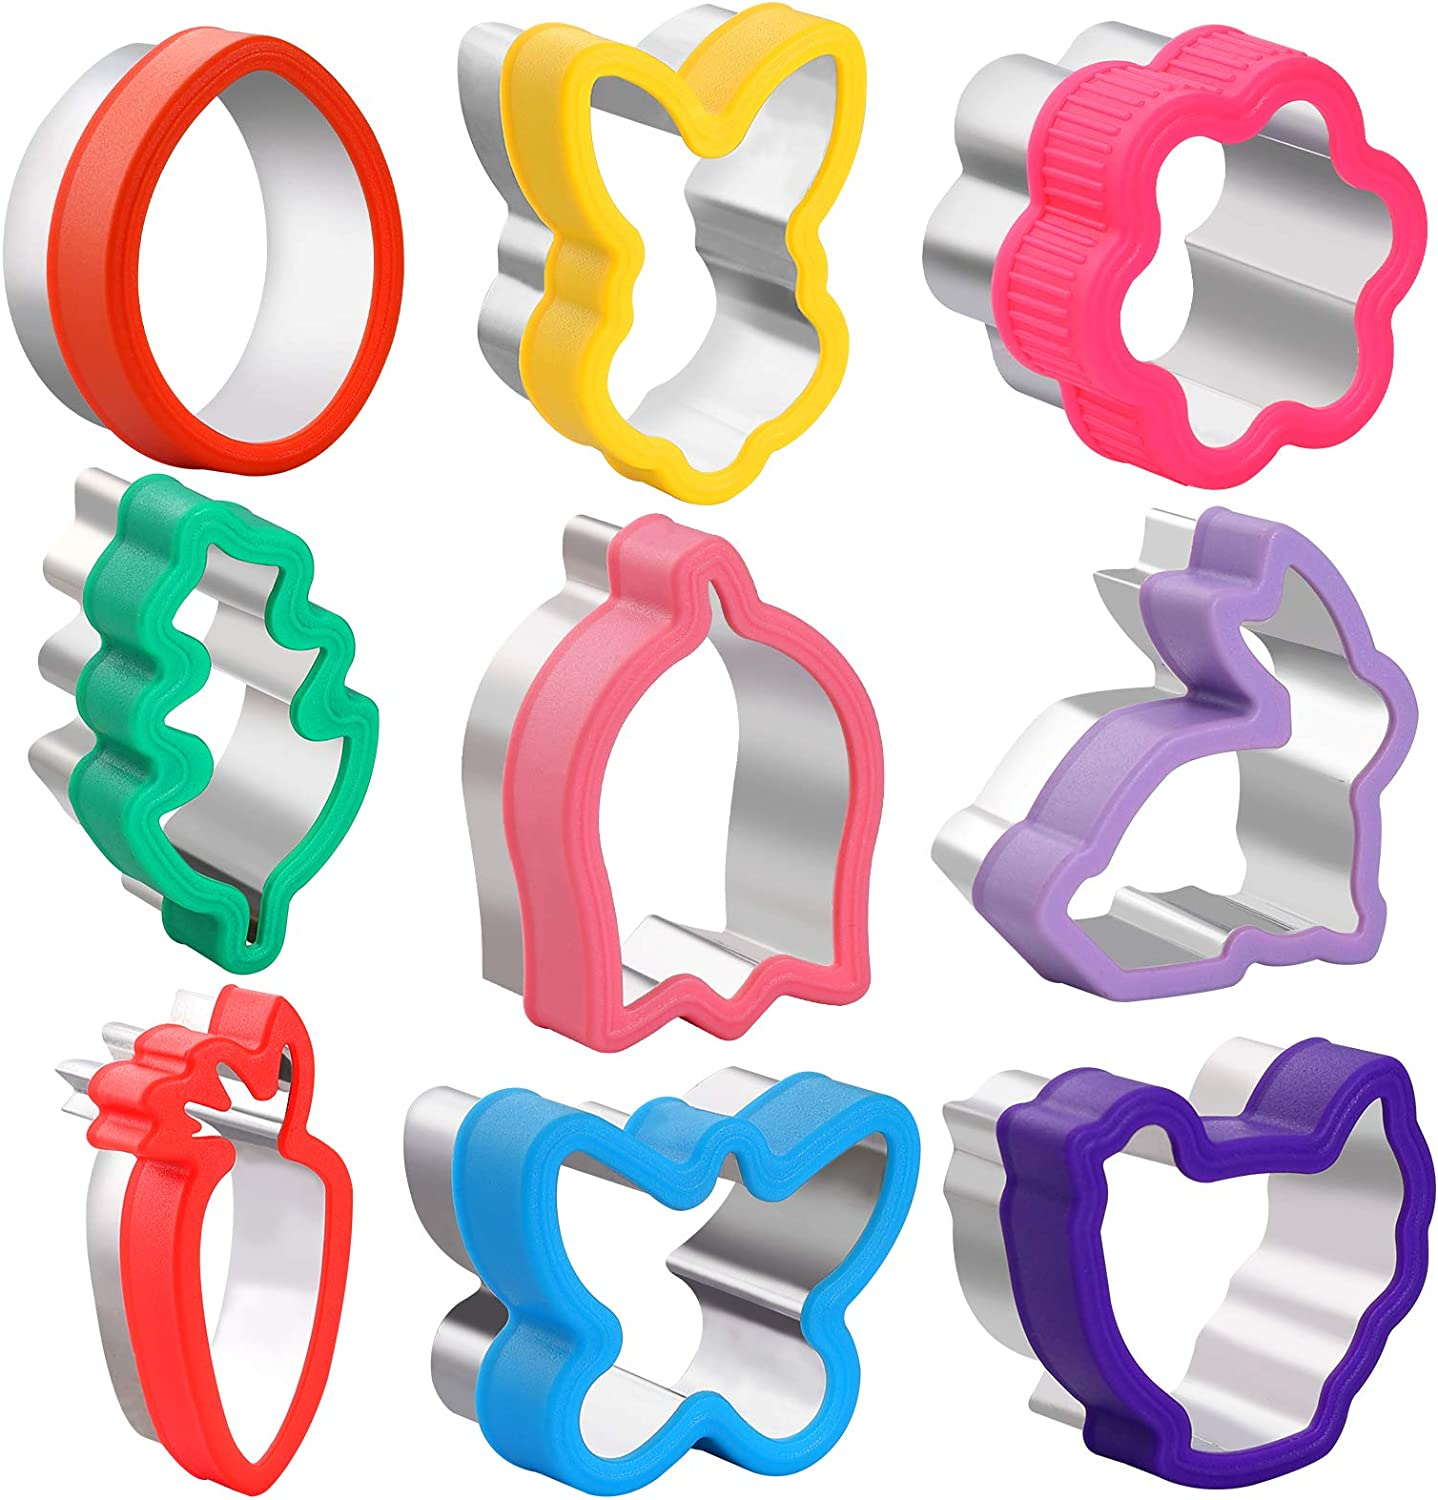 9pcs Easter Cookie Cutter Shapes Set,stainless steel-food grade Fruit and Cookie Stamps cutter Mold,Decorative Food and Food Supplement Tools Accessories Crafts for Kitchen